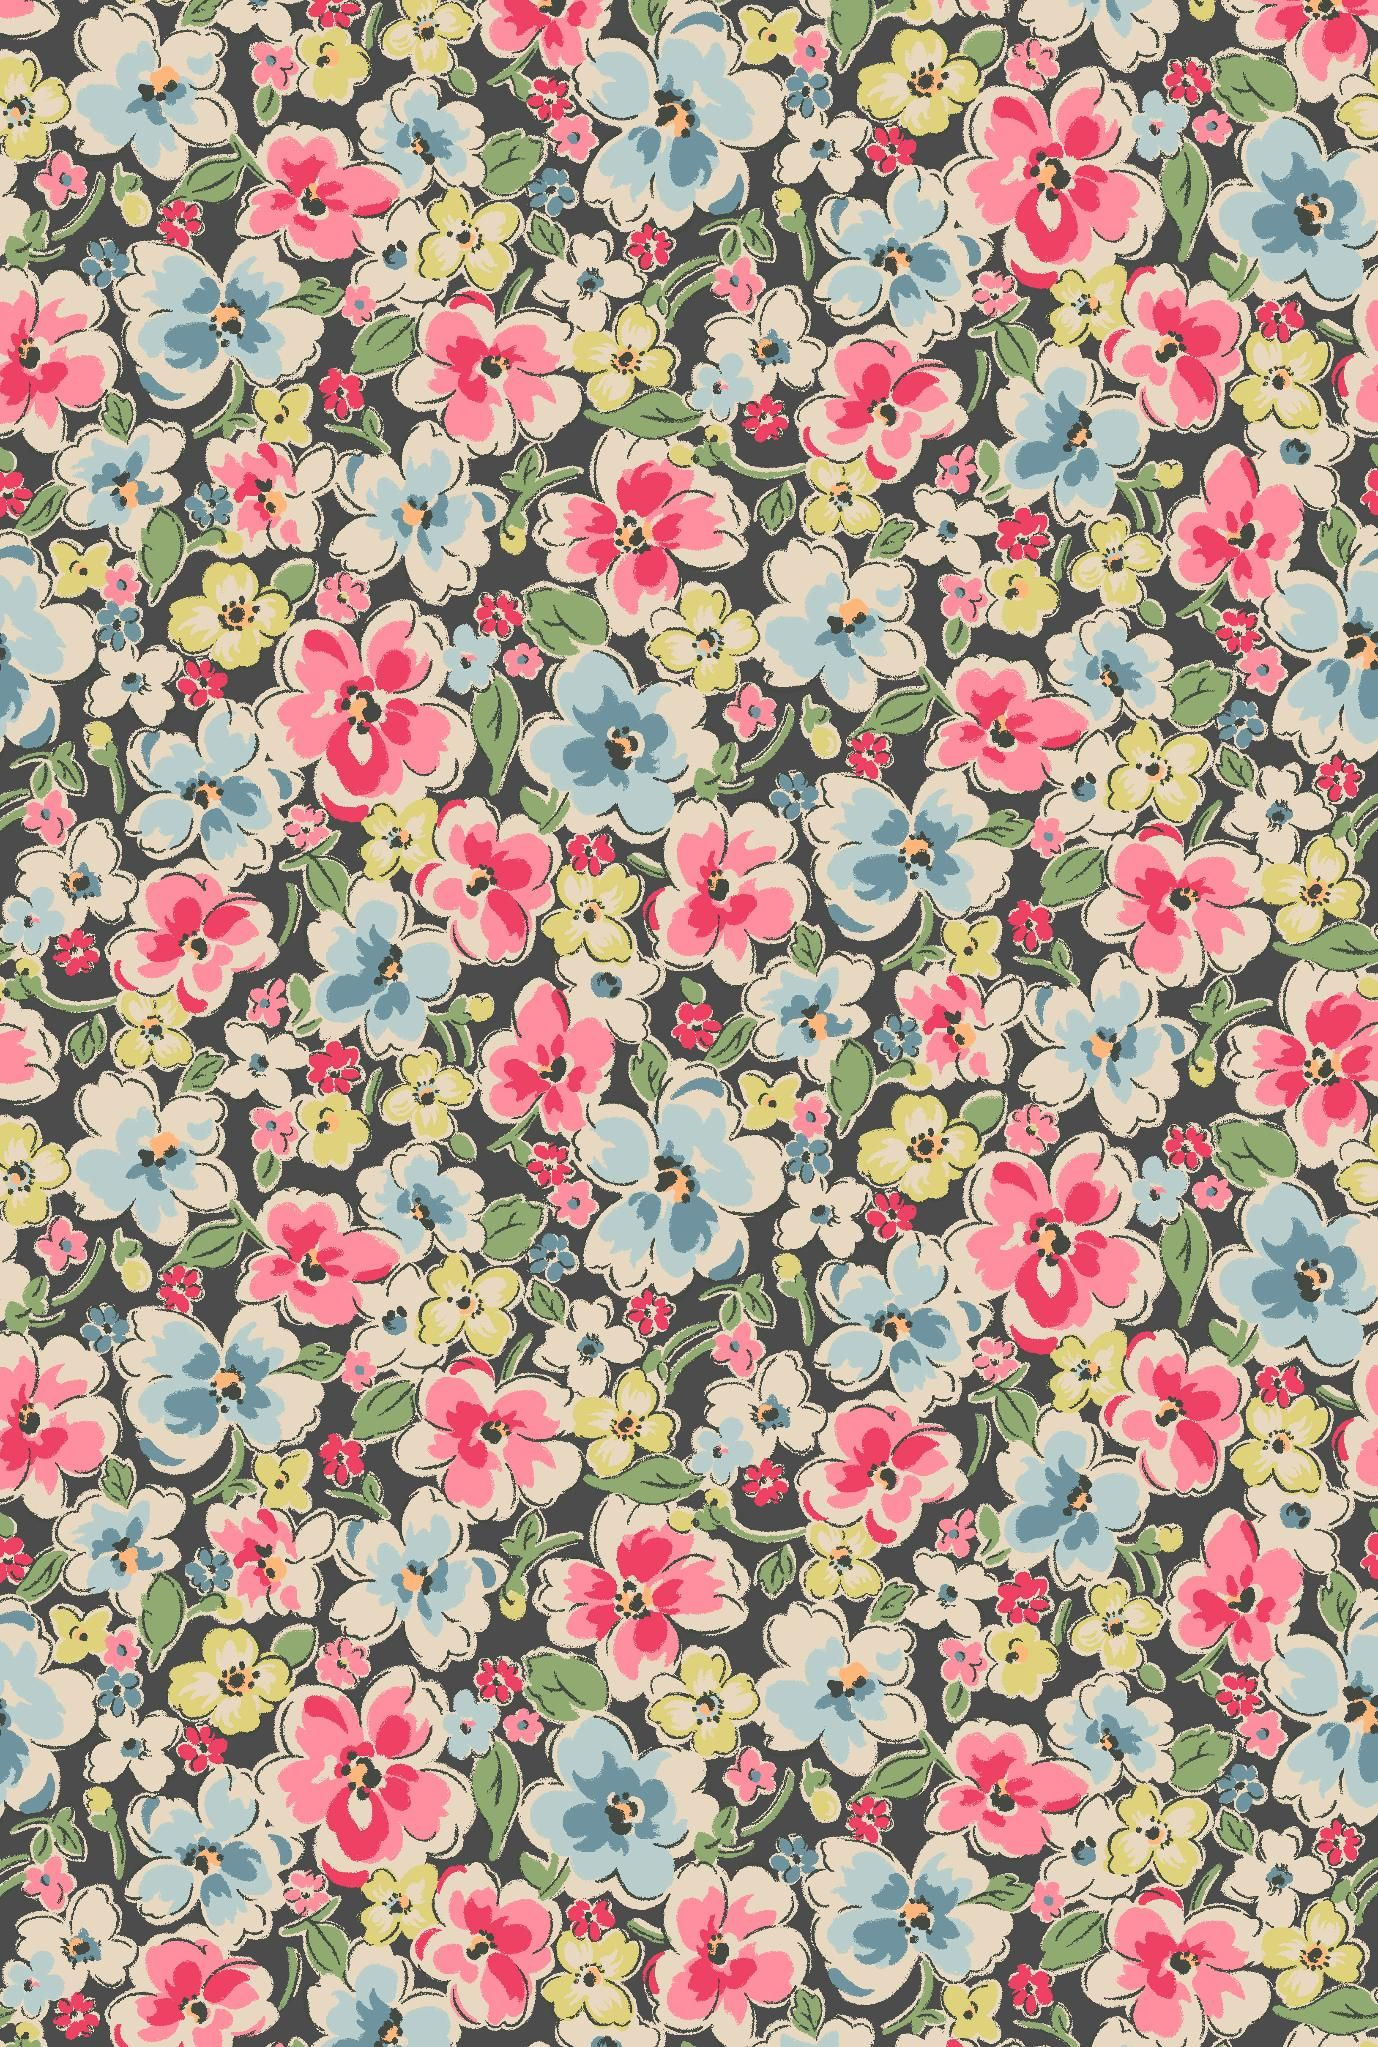 Wallpaper Cath Kidston Iphone Orchard Bloom A Bold And Beautiful Full Bloom Floral